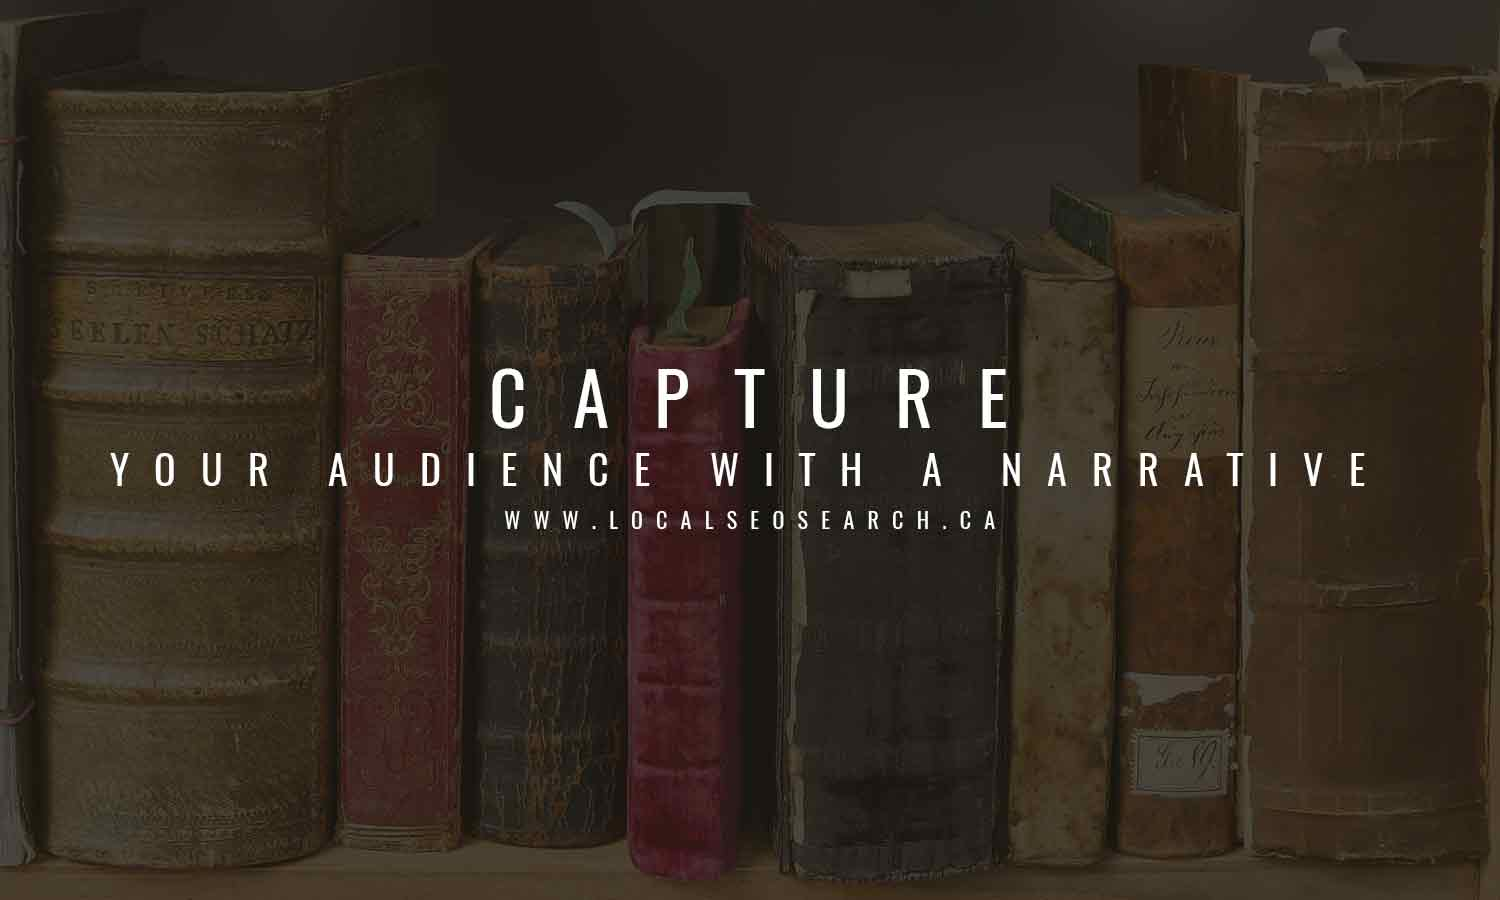 Capture-your-audience-with-a-narrative